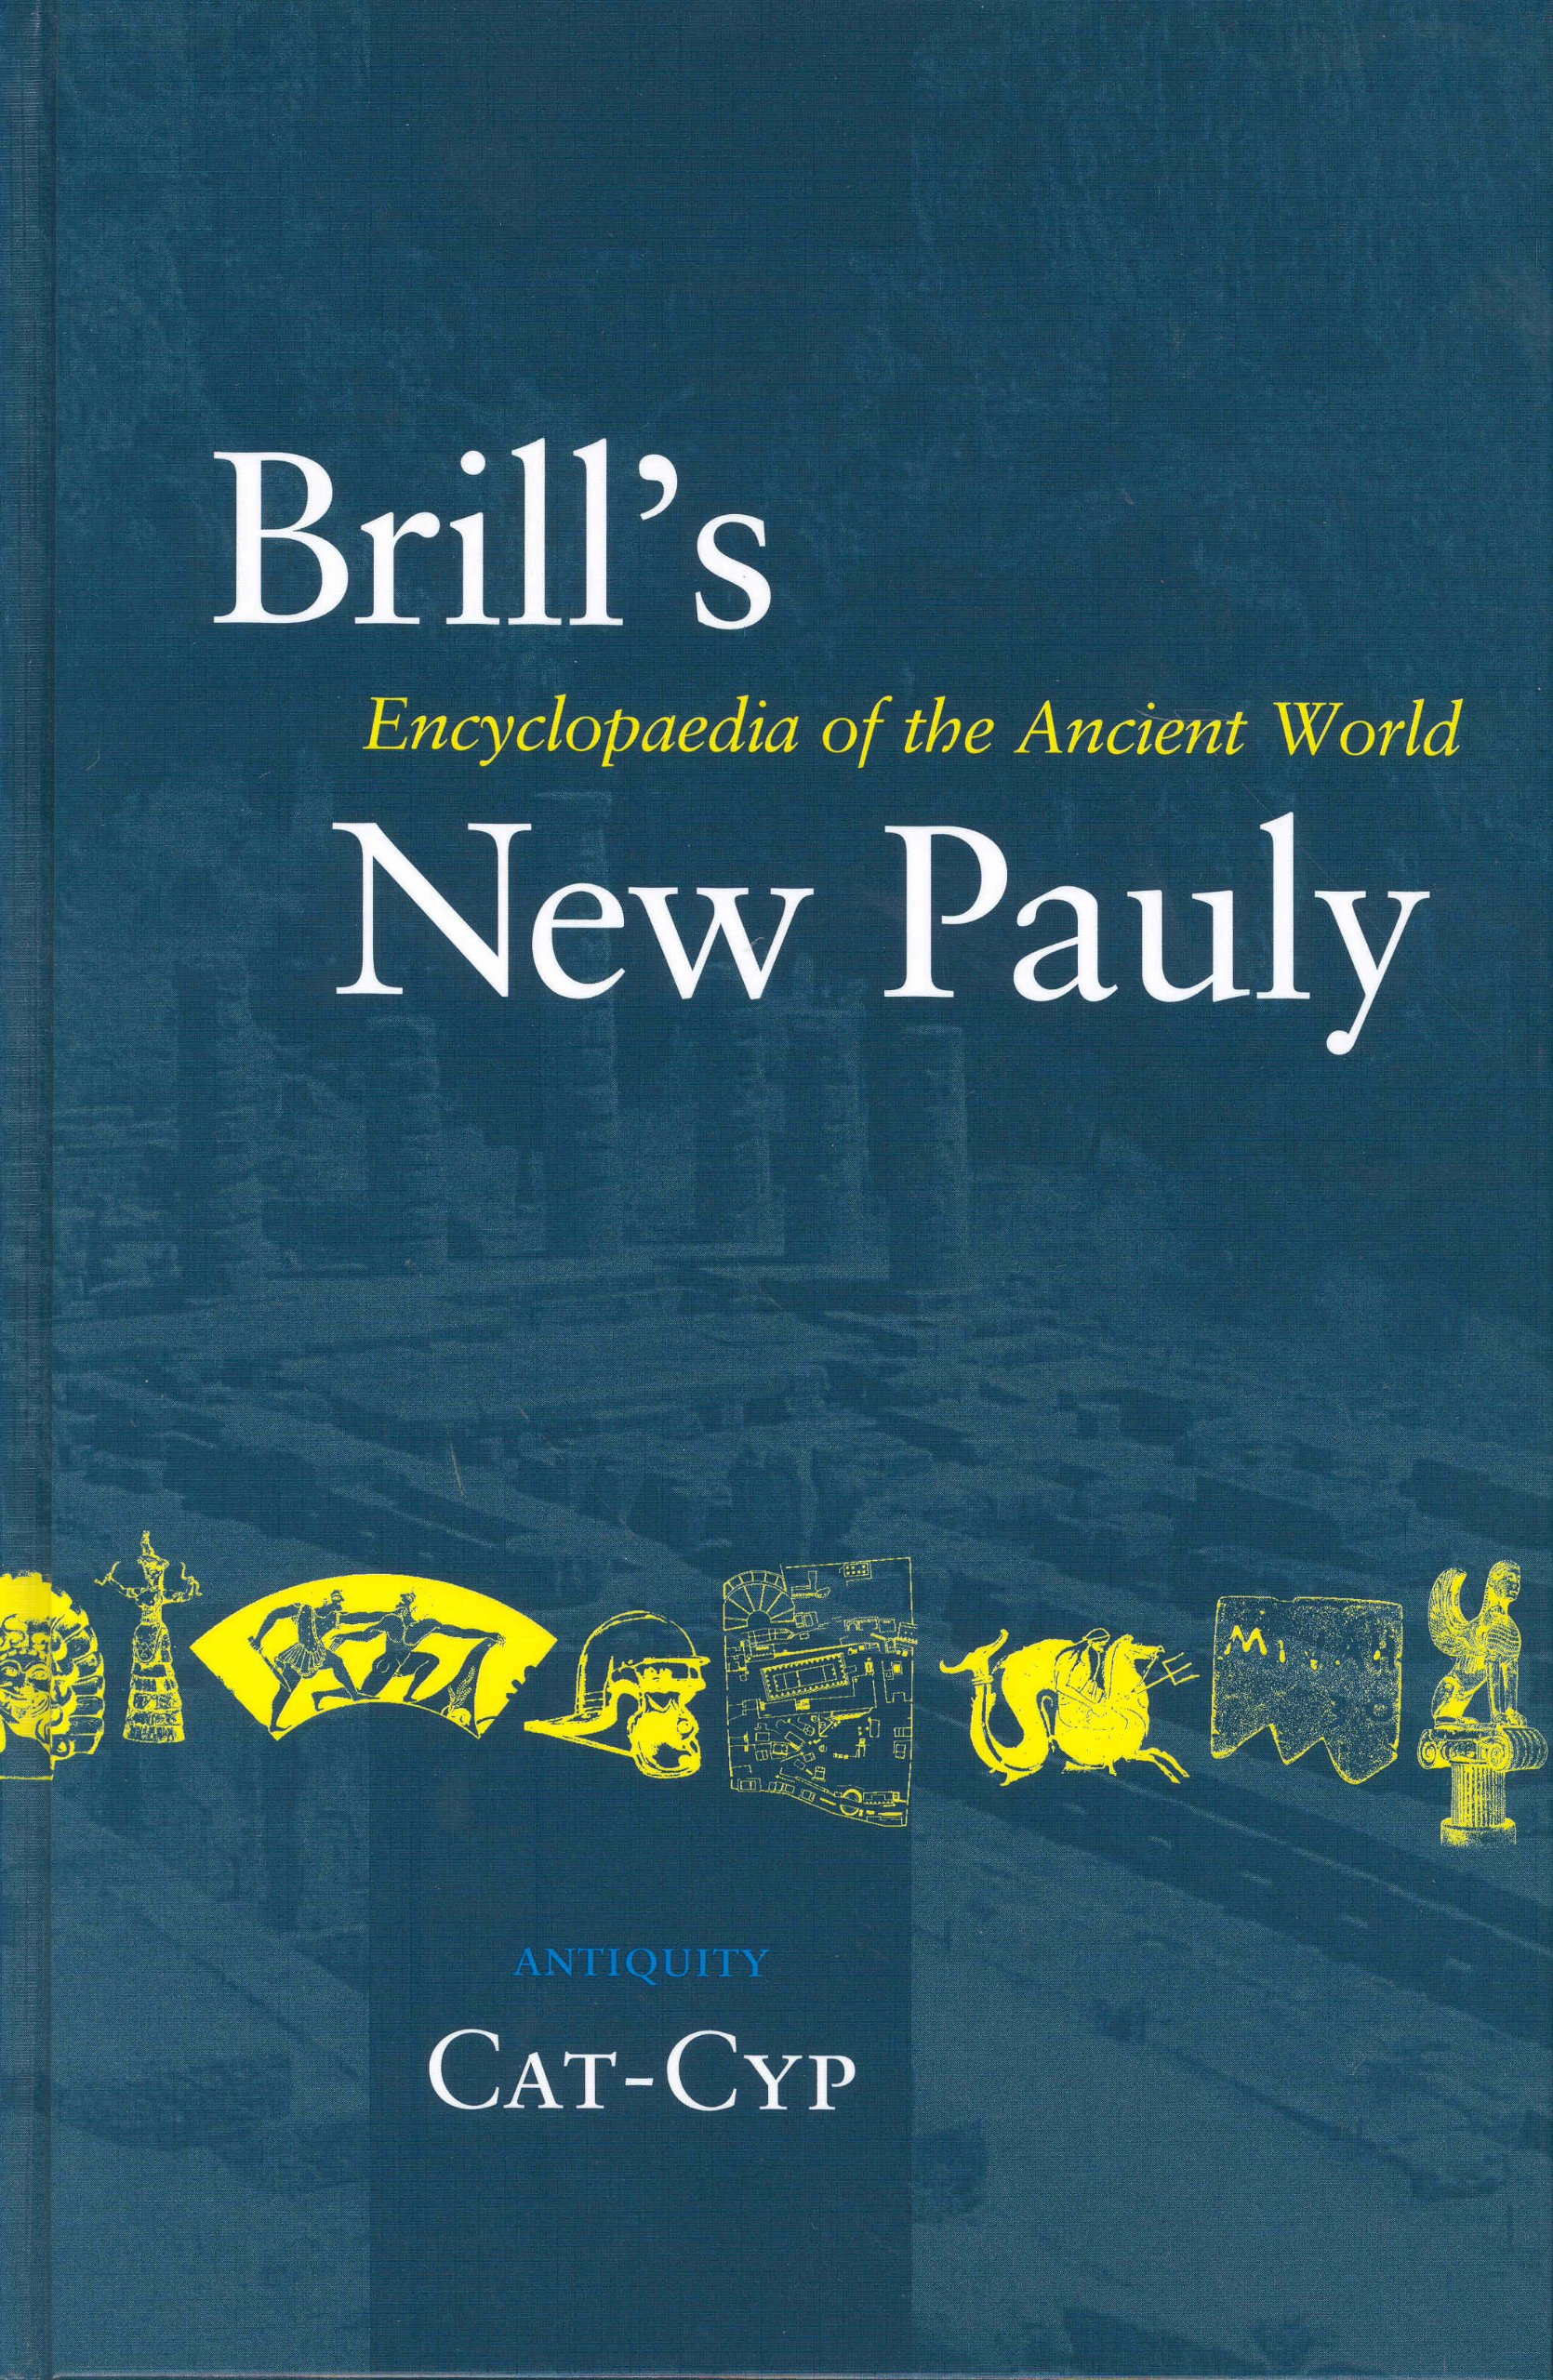 Brill's New Pauly: Encyclopaedia of the Ancient World: Antiquity, Volume 3 (Cat - Cyp)